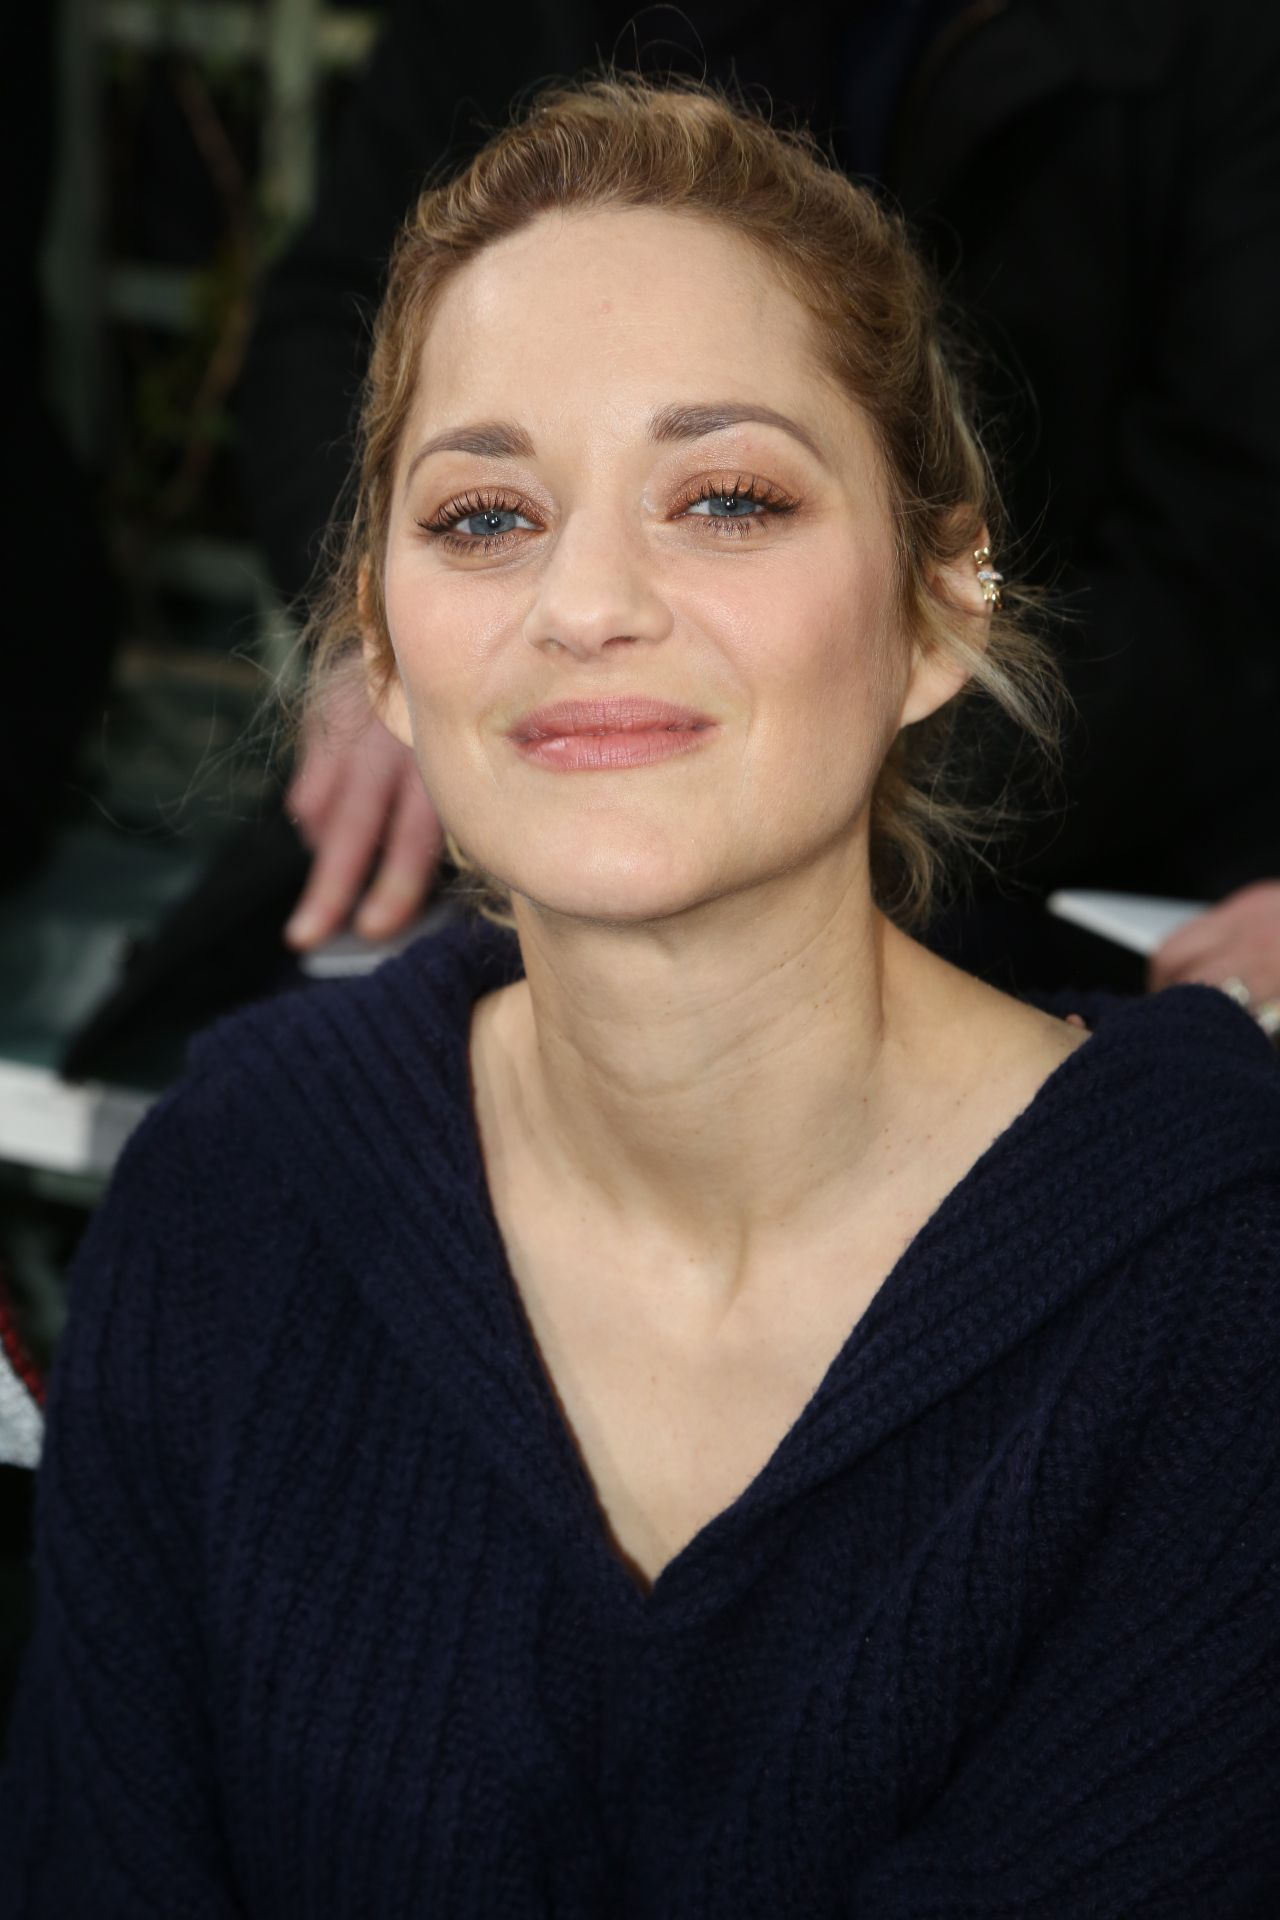 Marion Cotillard at Chanel Paris Fashion Week, January 2018